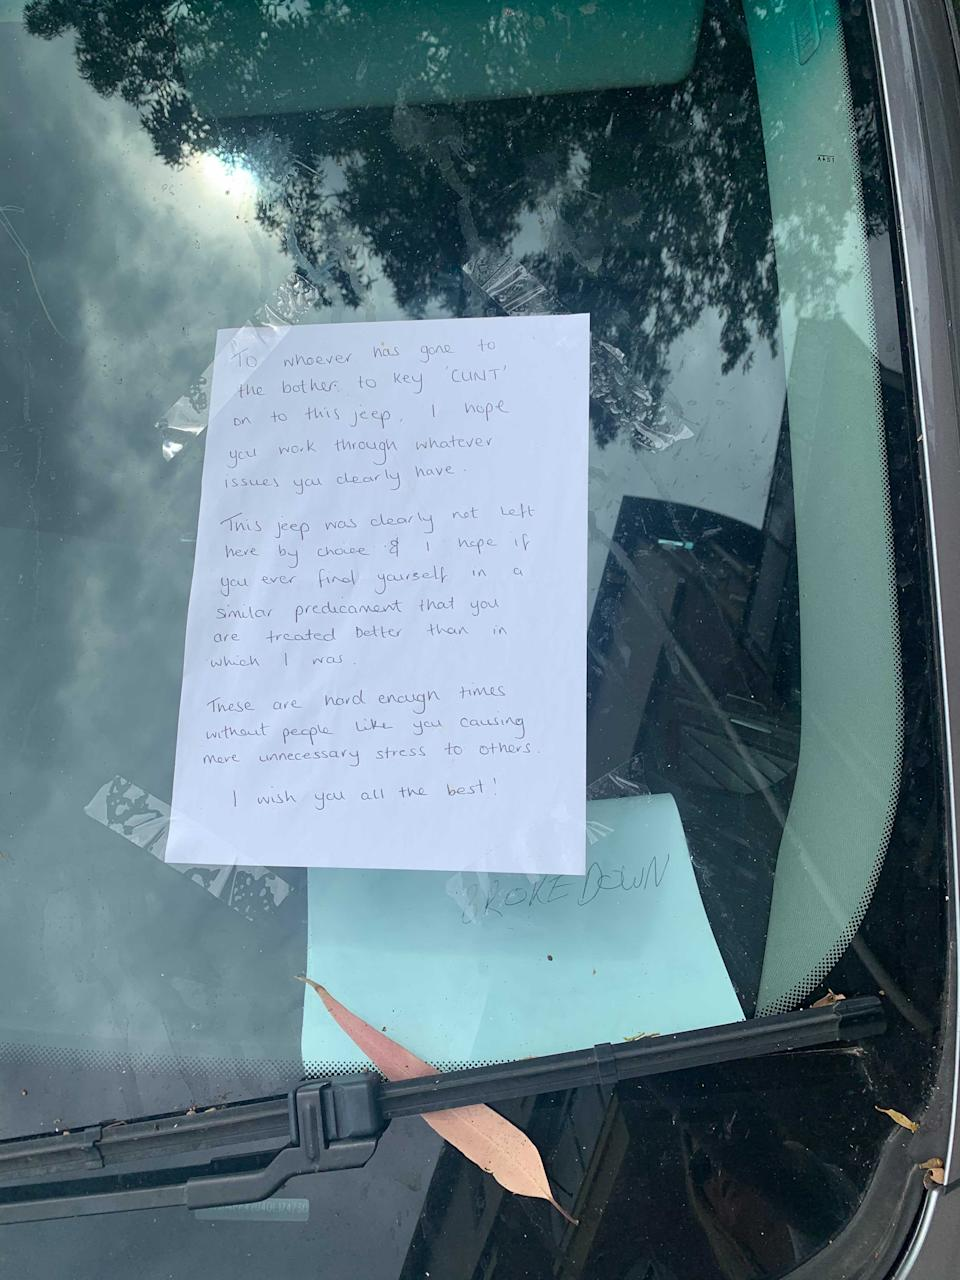 A jeep driver leaves a note in the window